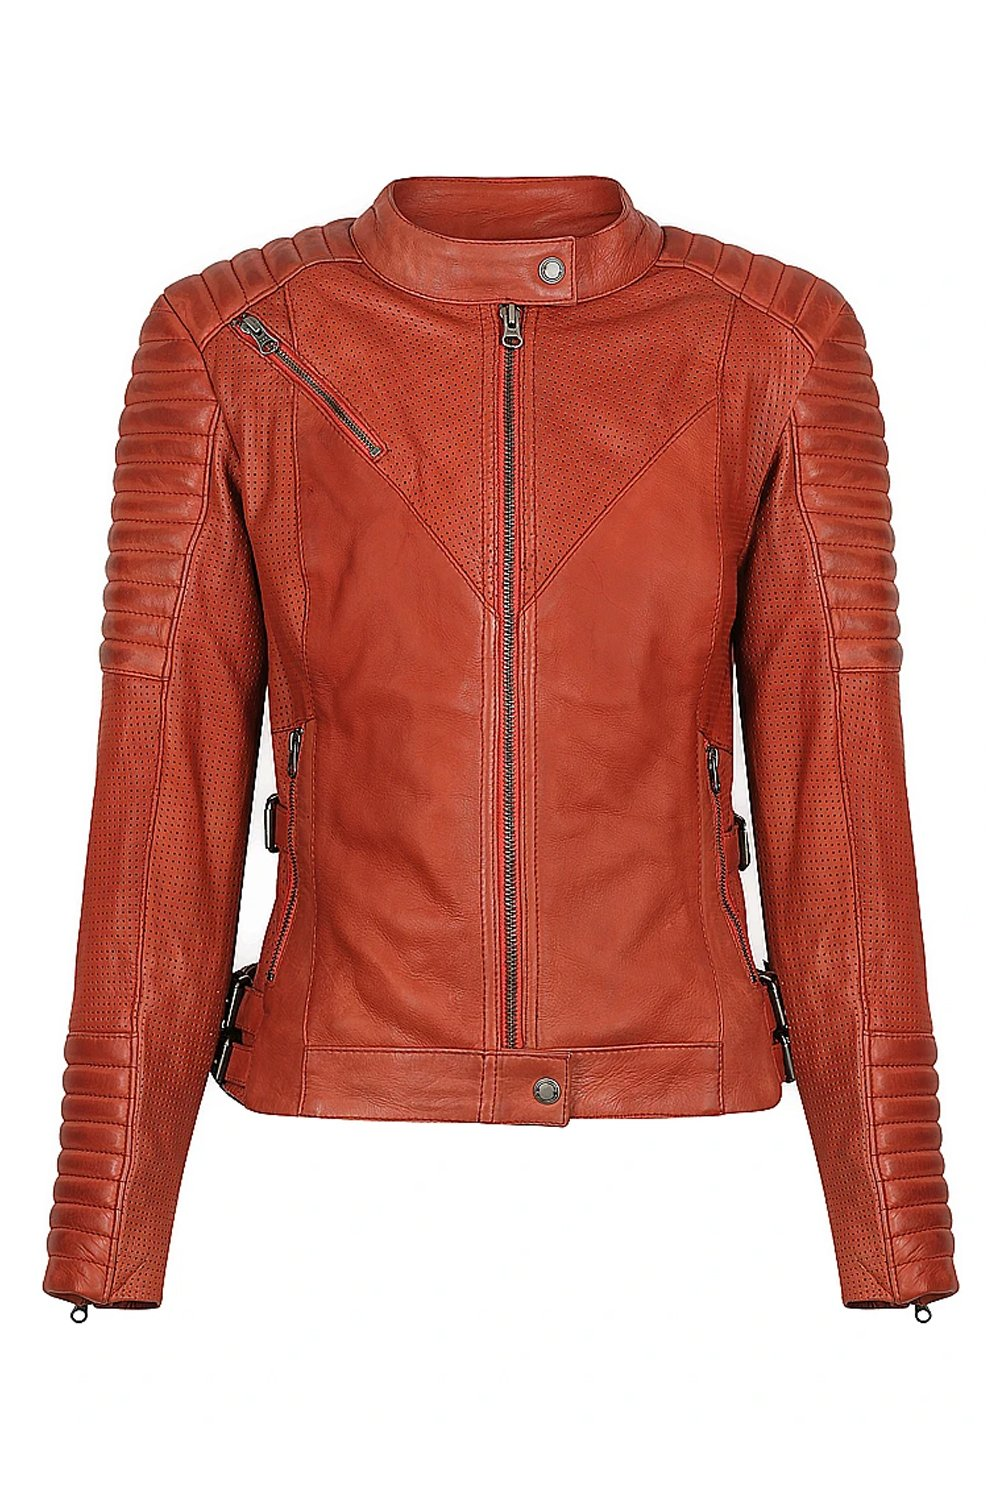 Wild & Free Rust Motorcycle Jacket Women